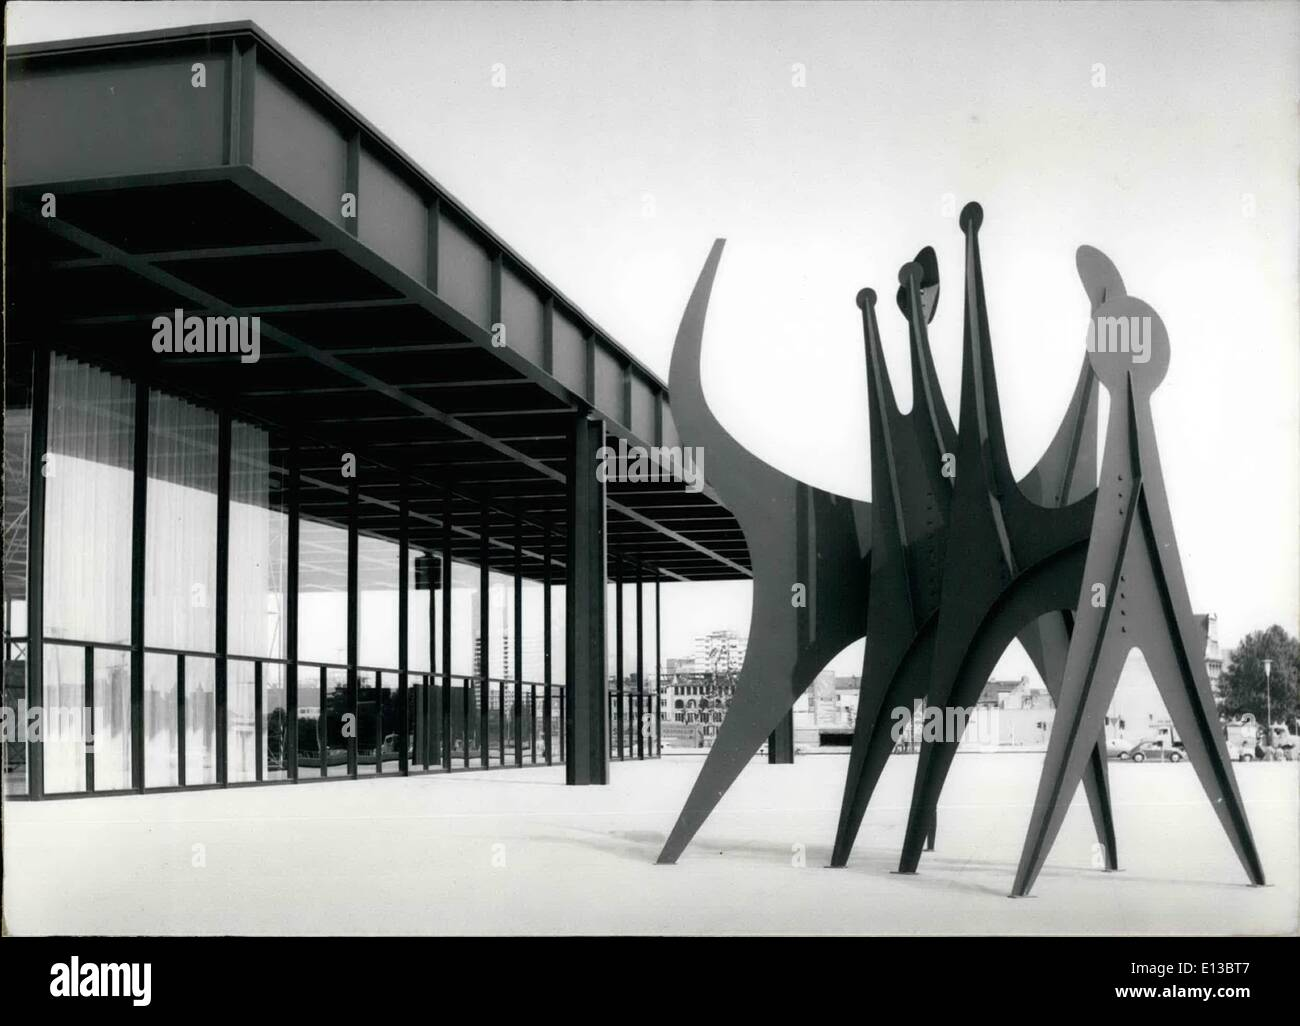 feb 29 2012 new west berlin museum of modern art the stock photo royalty free image. Black Bedroom Furniture Sets. Home Design Ideas